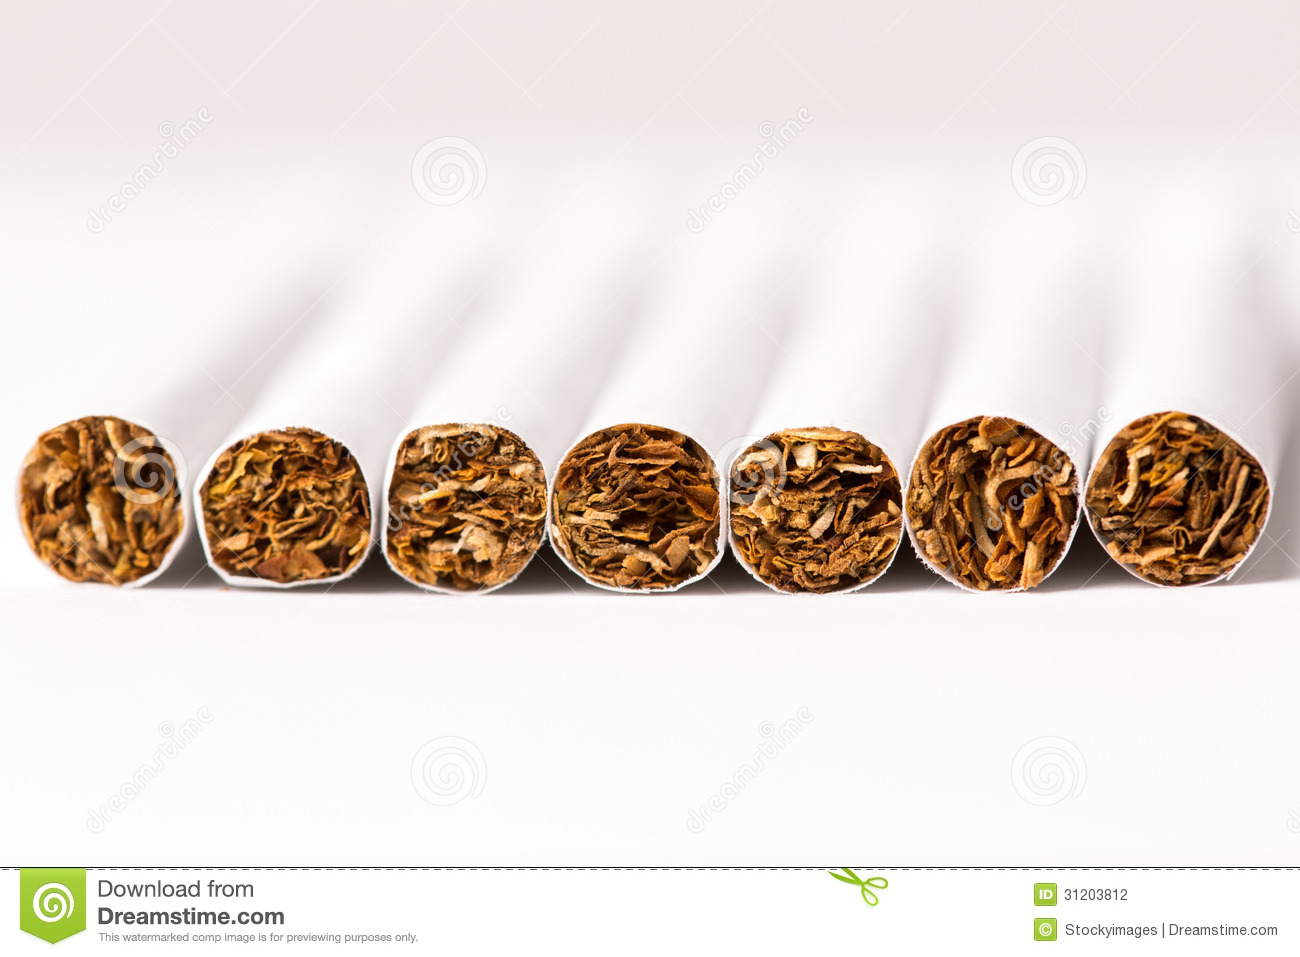 cigarette smoking is injurious to health essay < coursework service cigarette smoking is injurious to health essay